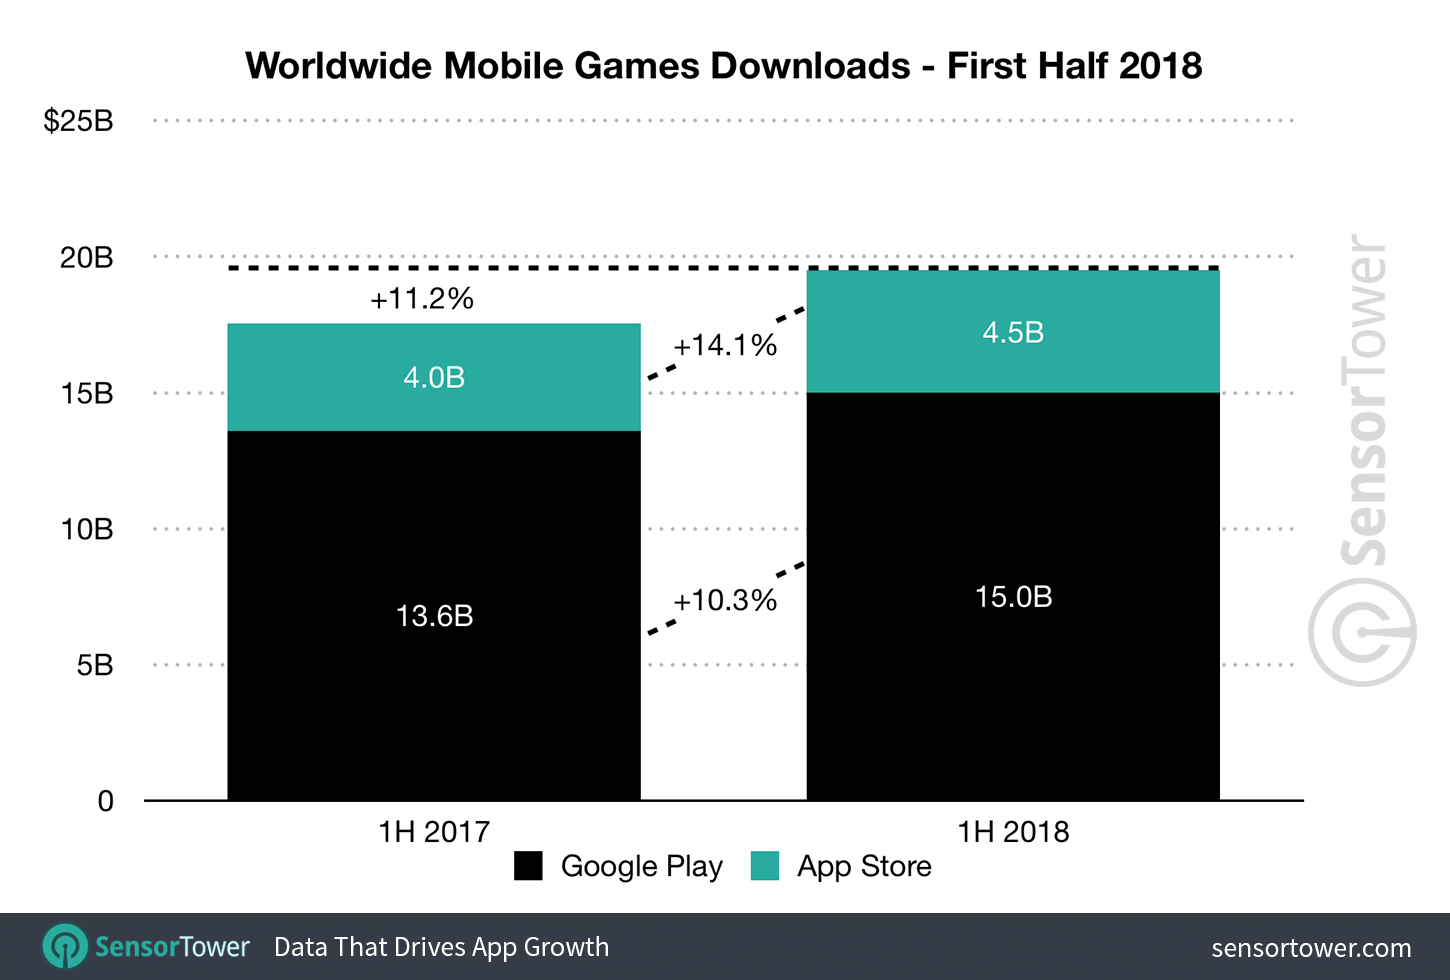 1H 2018 Mobile Game Downloads